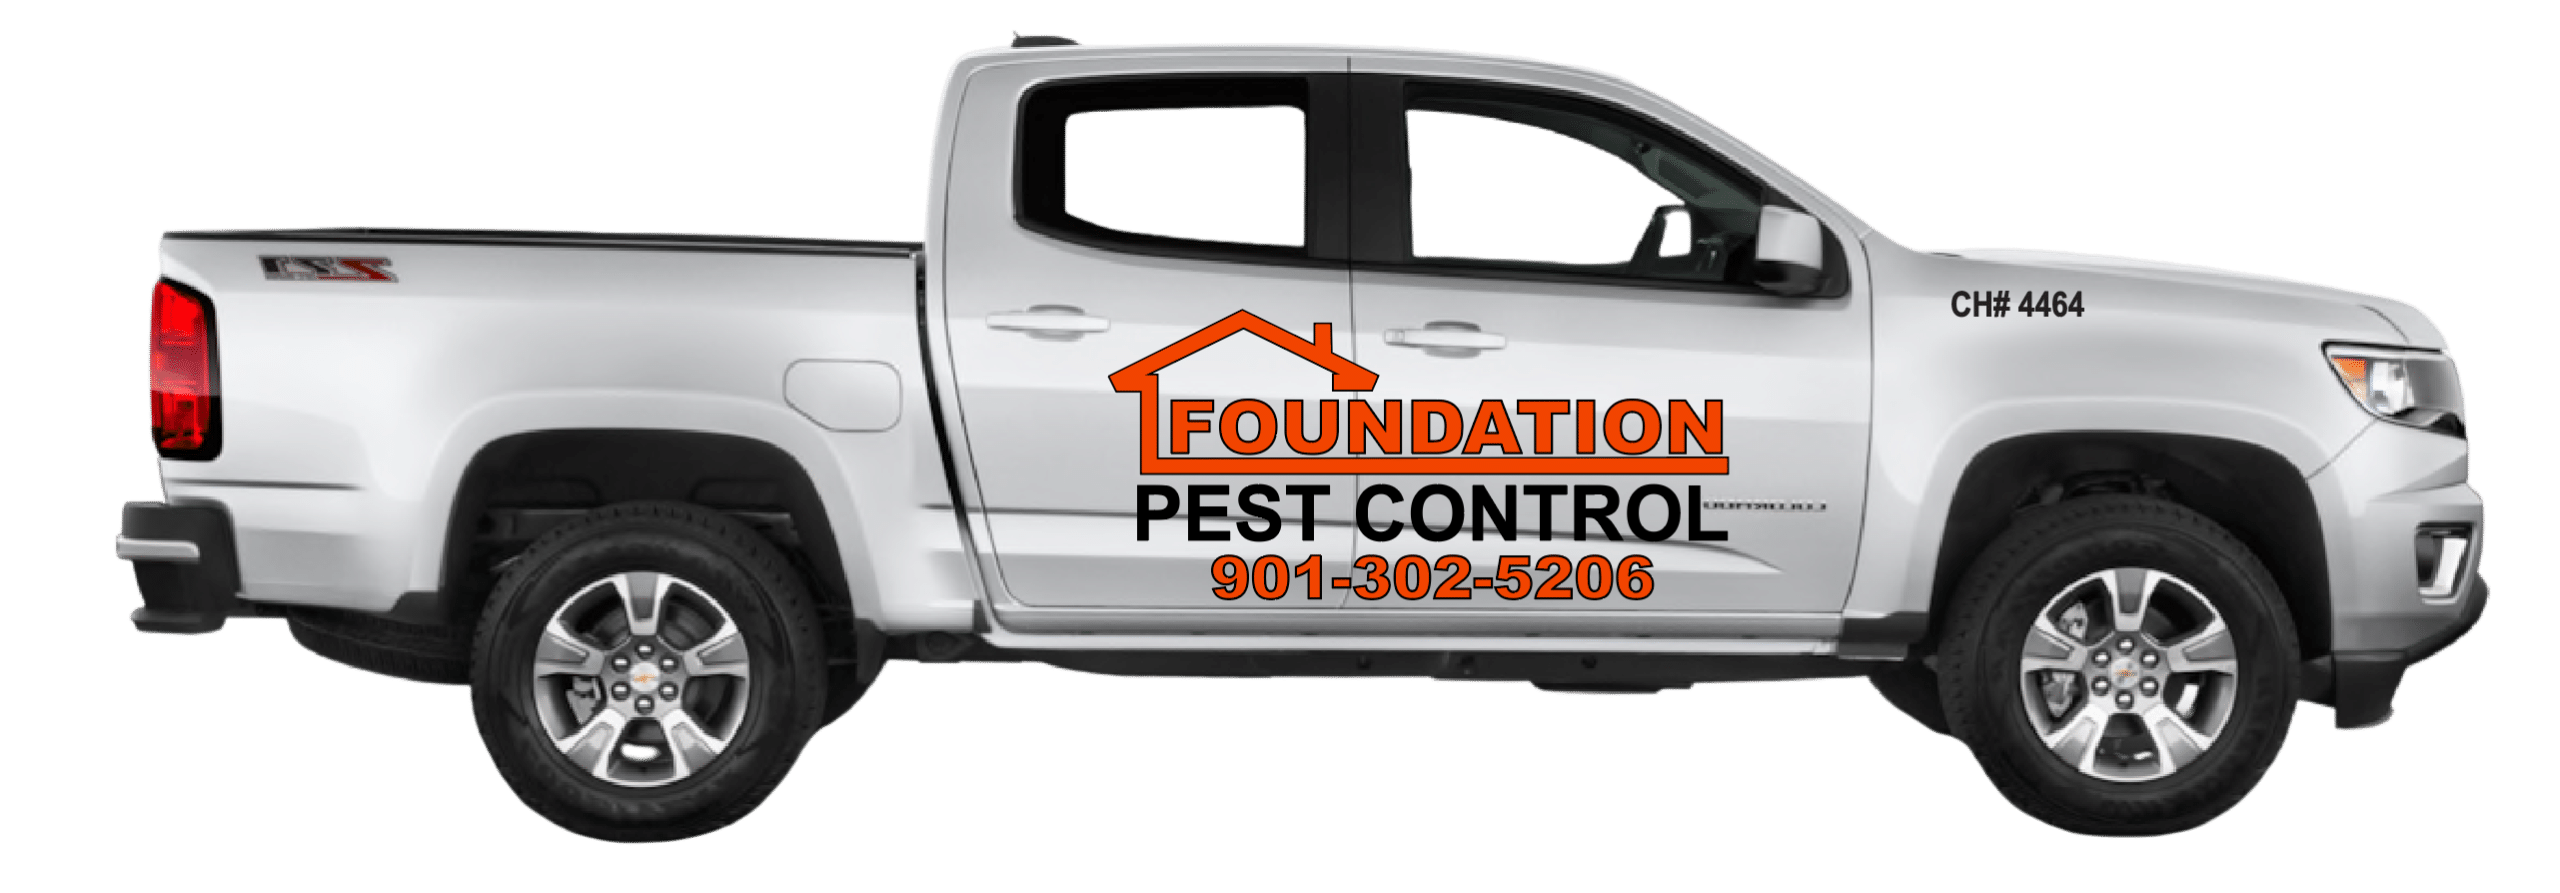 Foundation Pest Control Truck